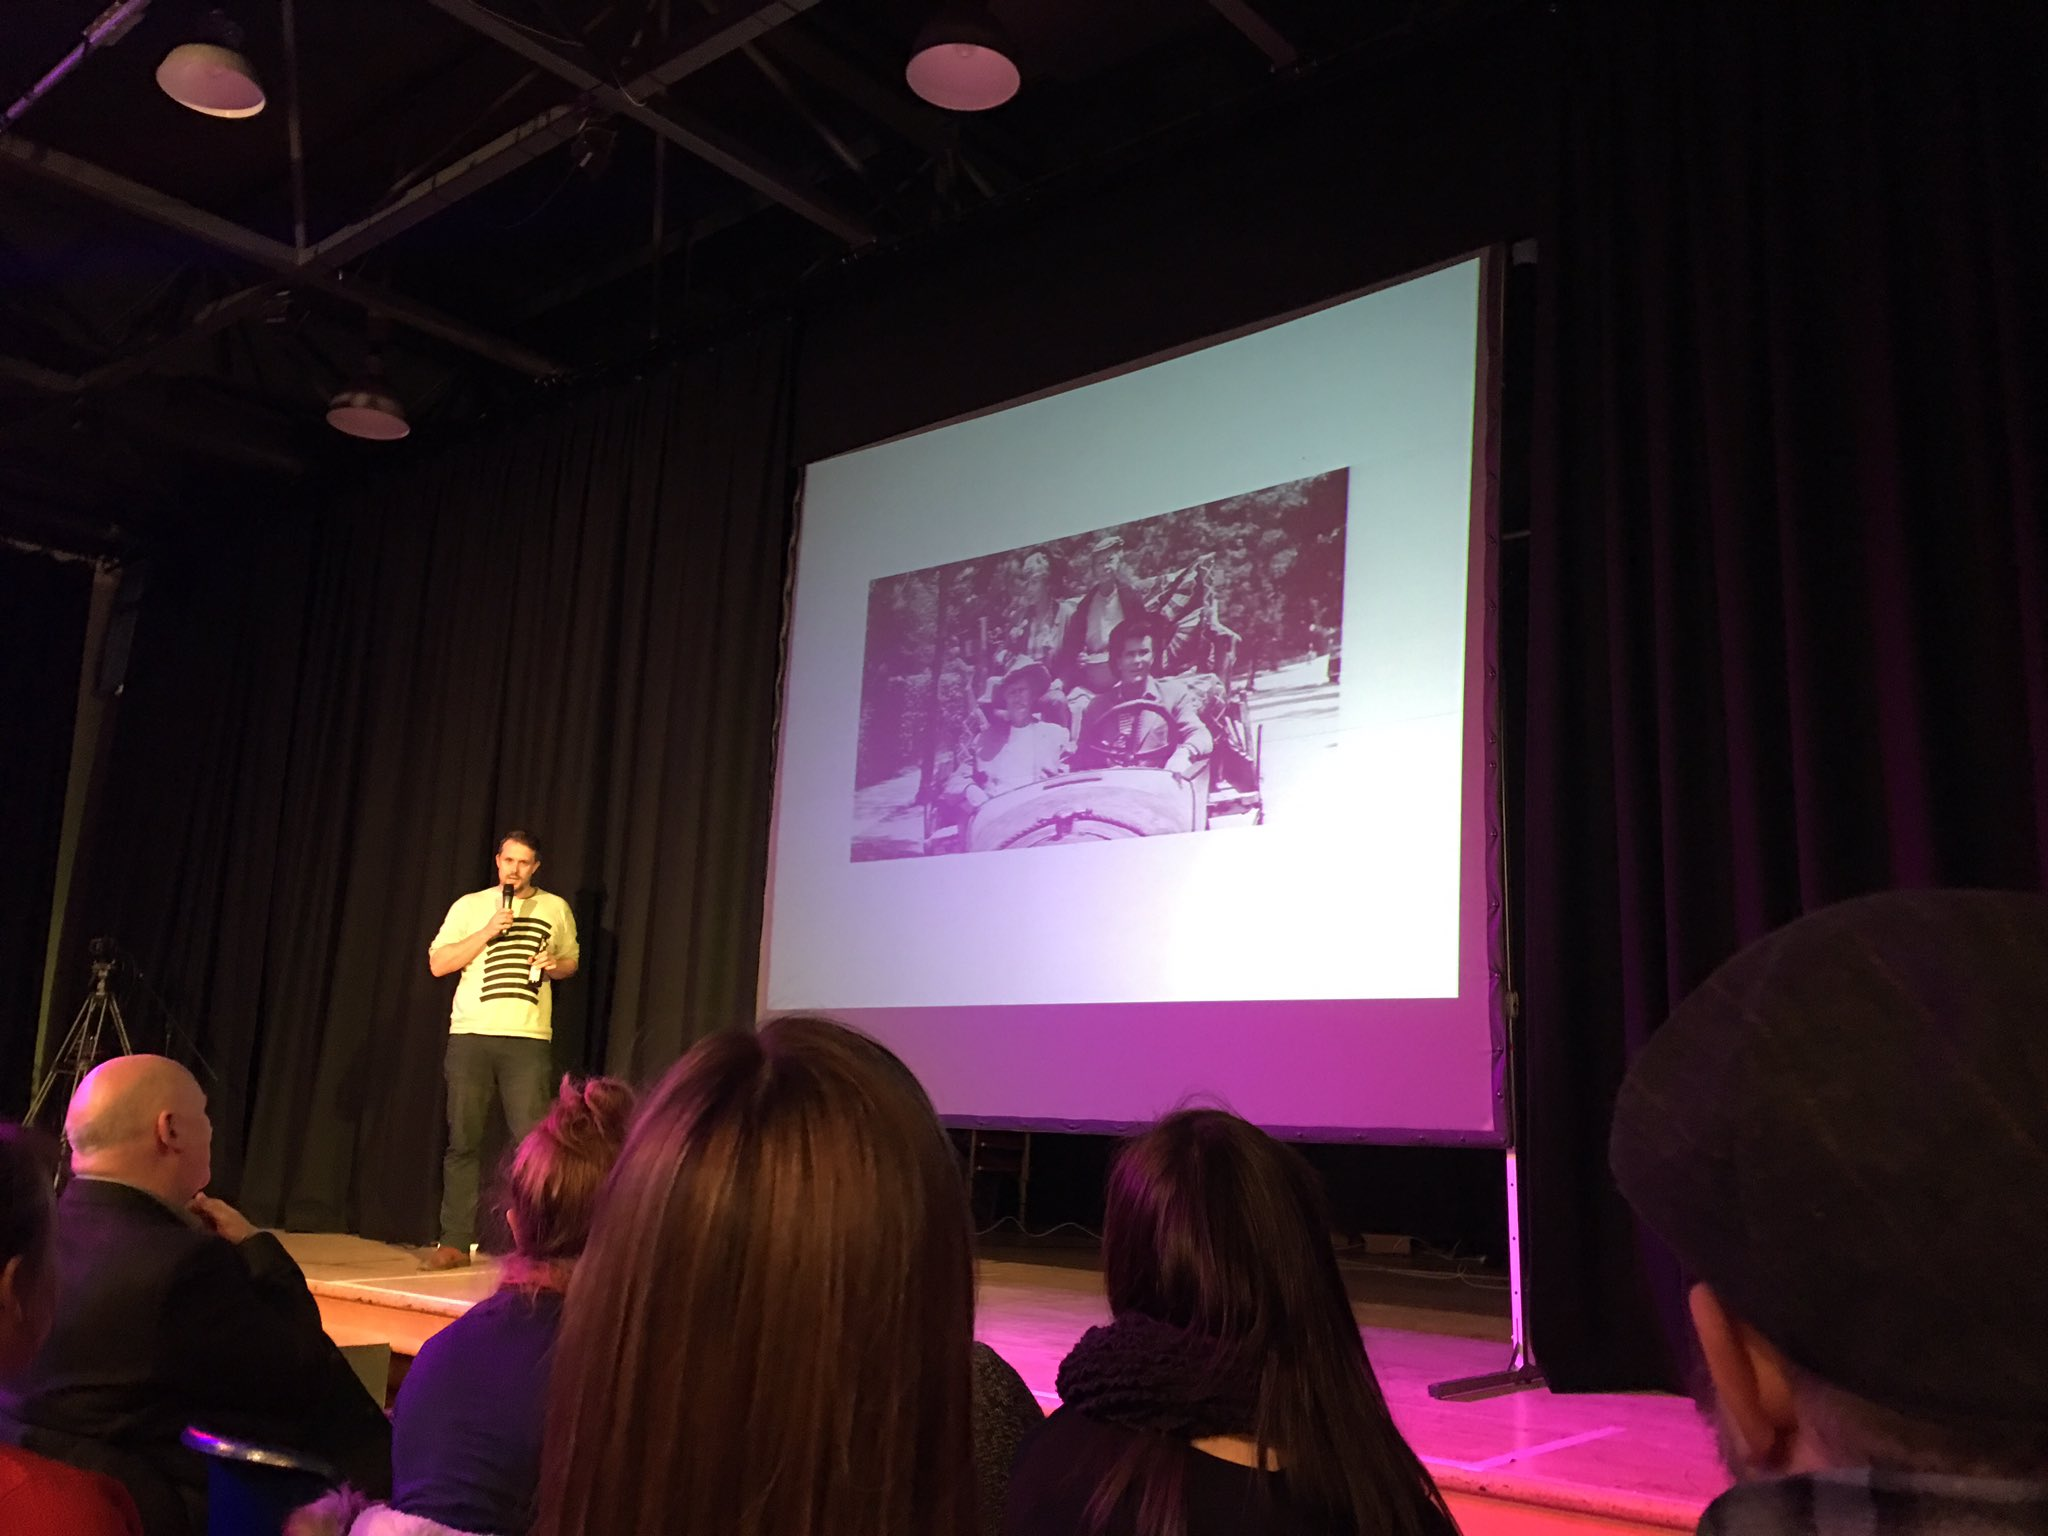 The art of making things a little bit less shit #pkn_dnd #Dundee #Brighton #Preston https://t.co/XmY5Dy2iZz